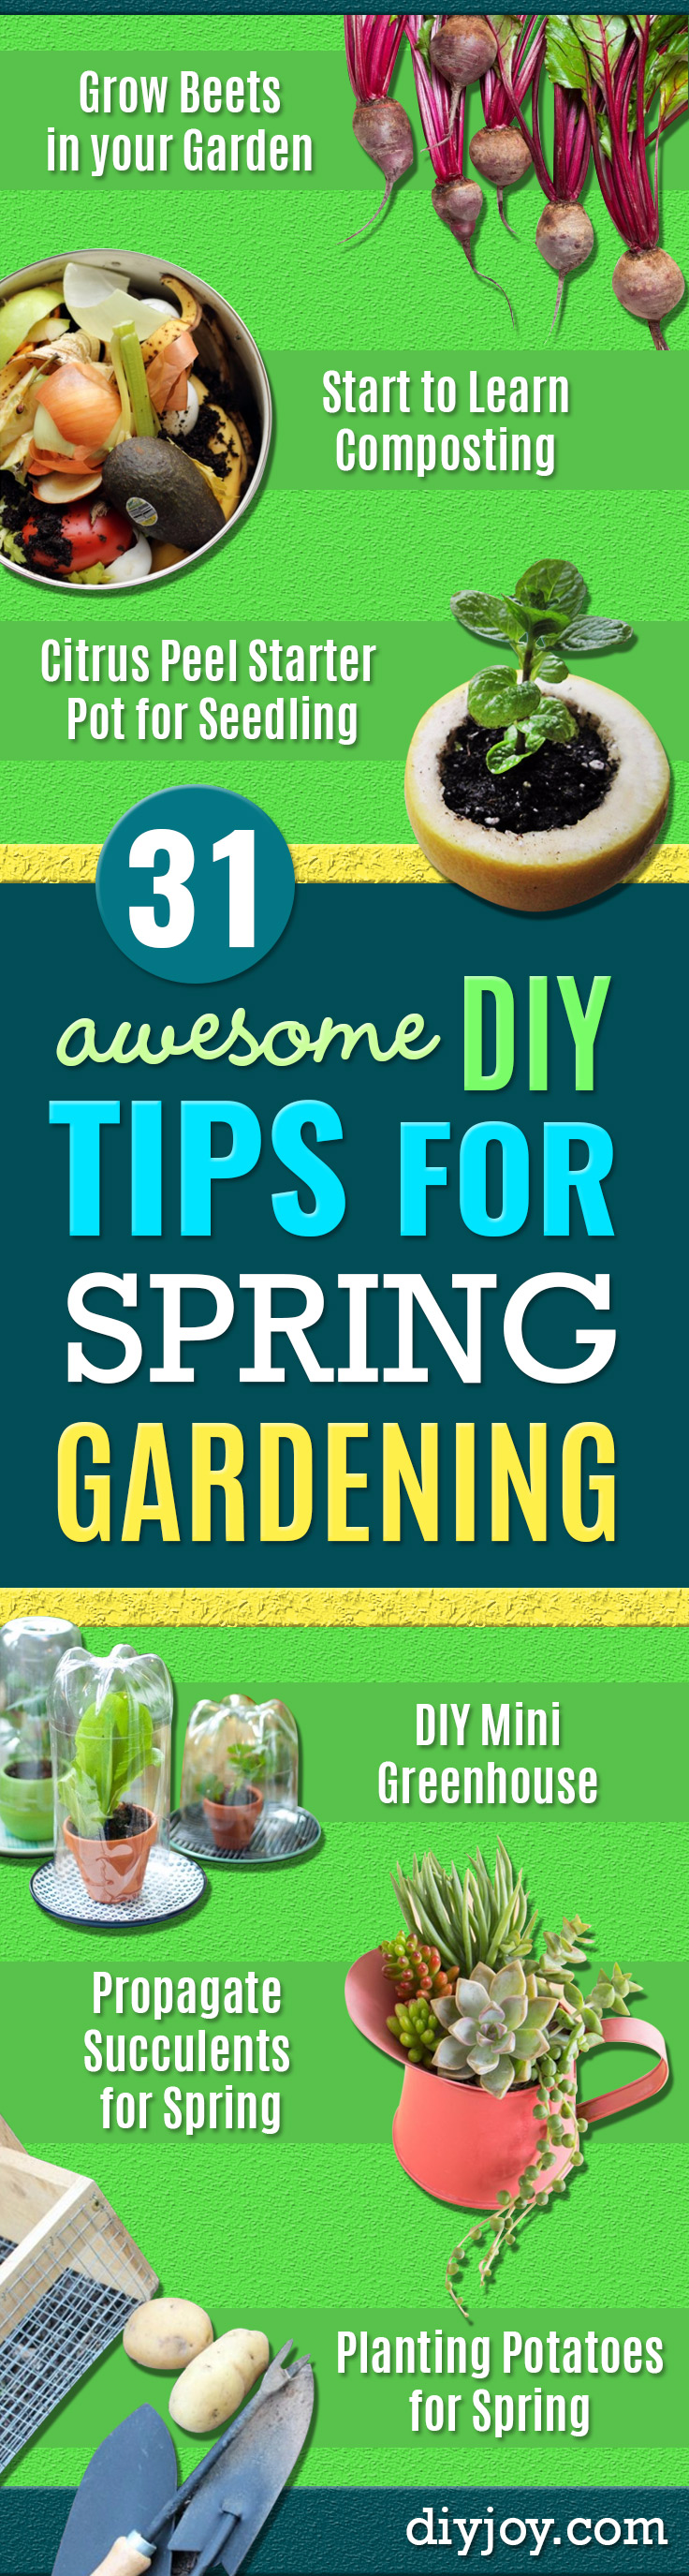 DIY Spring Gardening Projects - Cool and Easy Planting Tips for Spring Garden - Step by Step Tutorials for Growing Seeds, Plants, Vegetables and Flowers in You Yard - DIY Project Ideas for Women and Men - Creative and Quick Backyard Ideas For Summer http://diyjoy.com/diy-spring-gardening